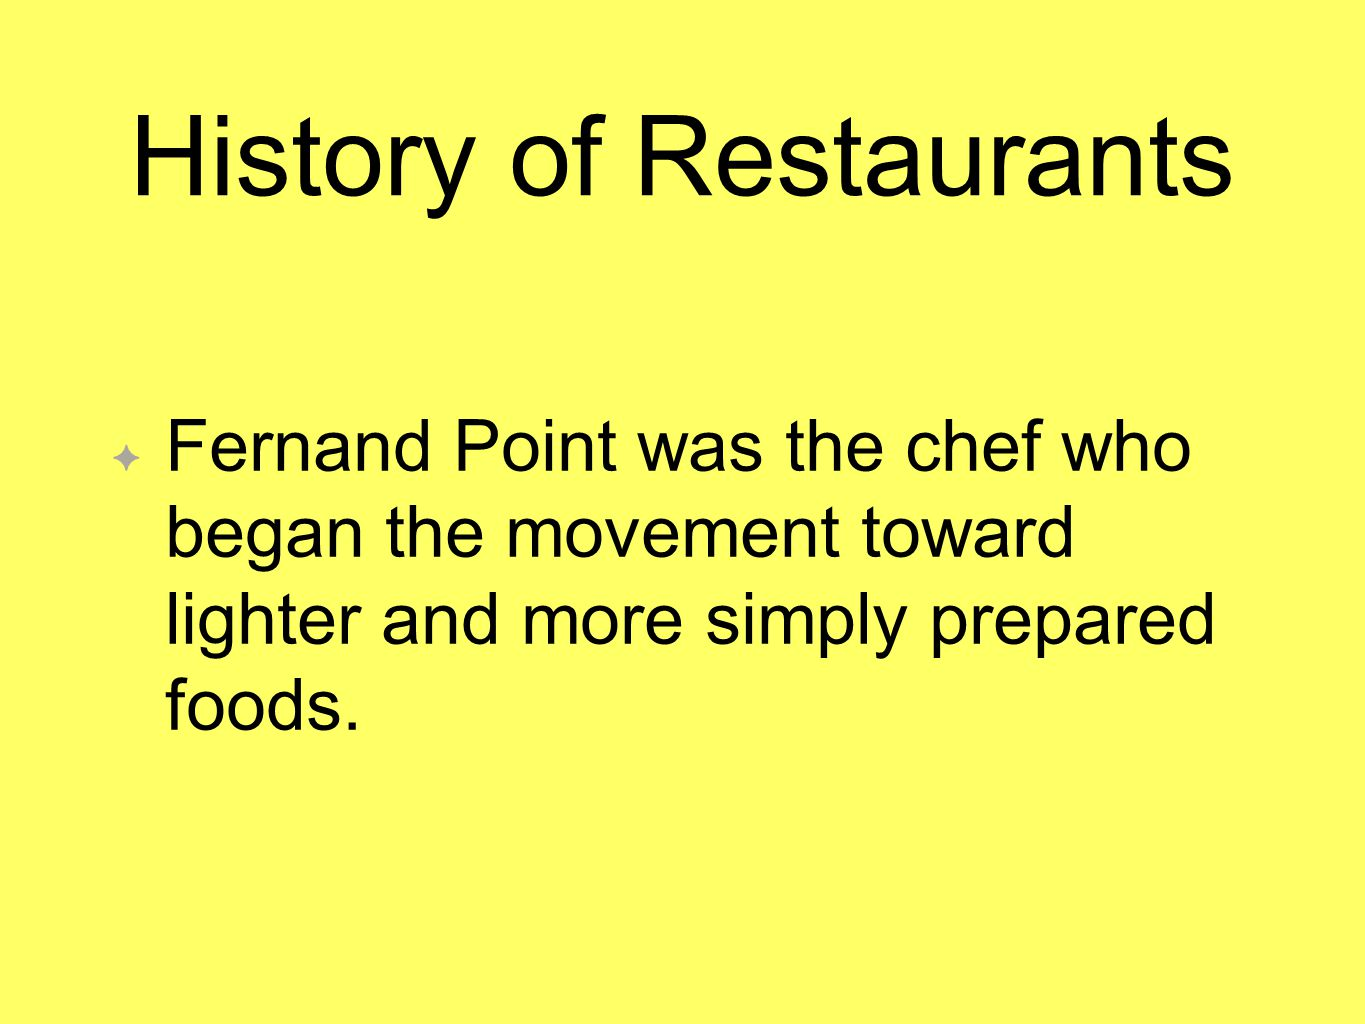 History of Restaurants Fernand Point was the chef who began the movement toward lighter and more simply prepared foods.